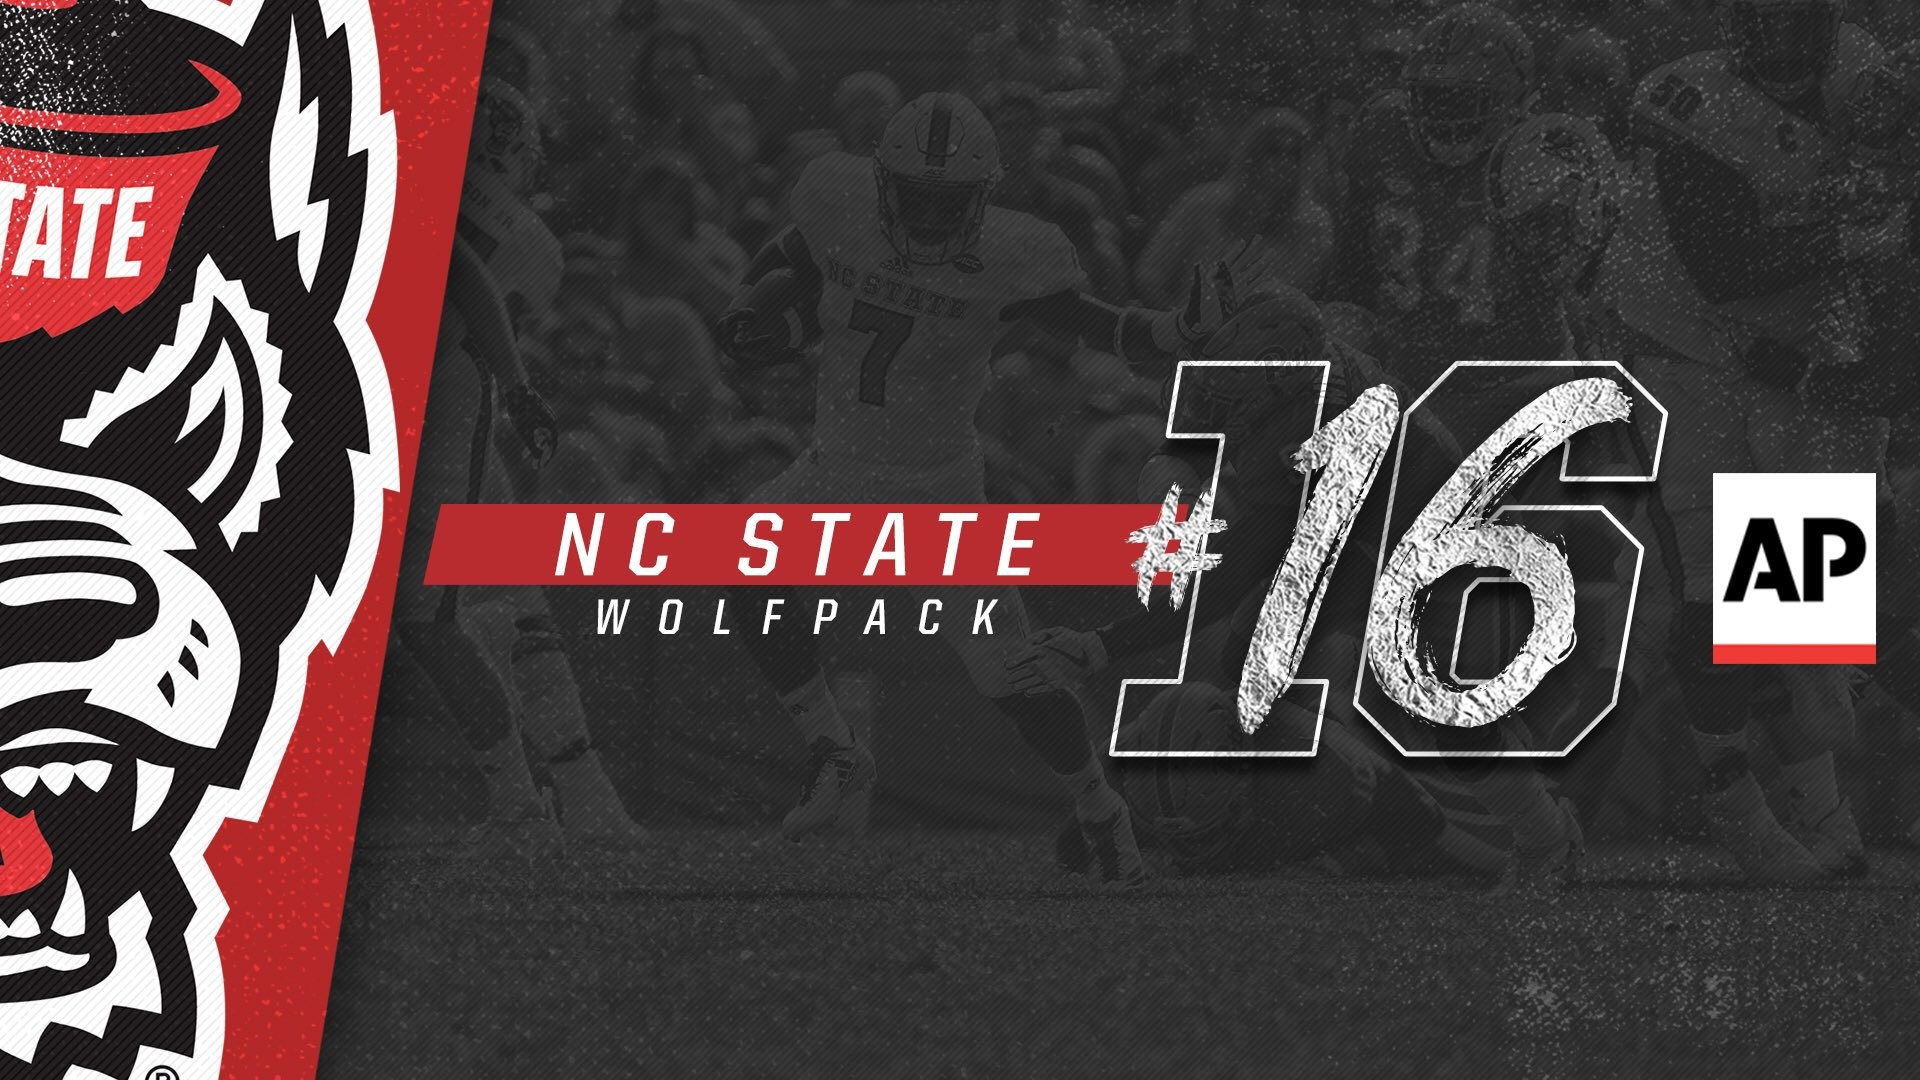 1920x1080 NC State FootballVerified account